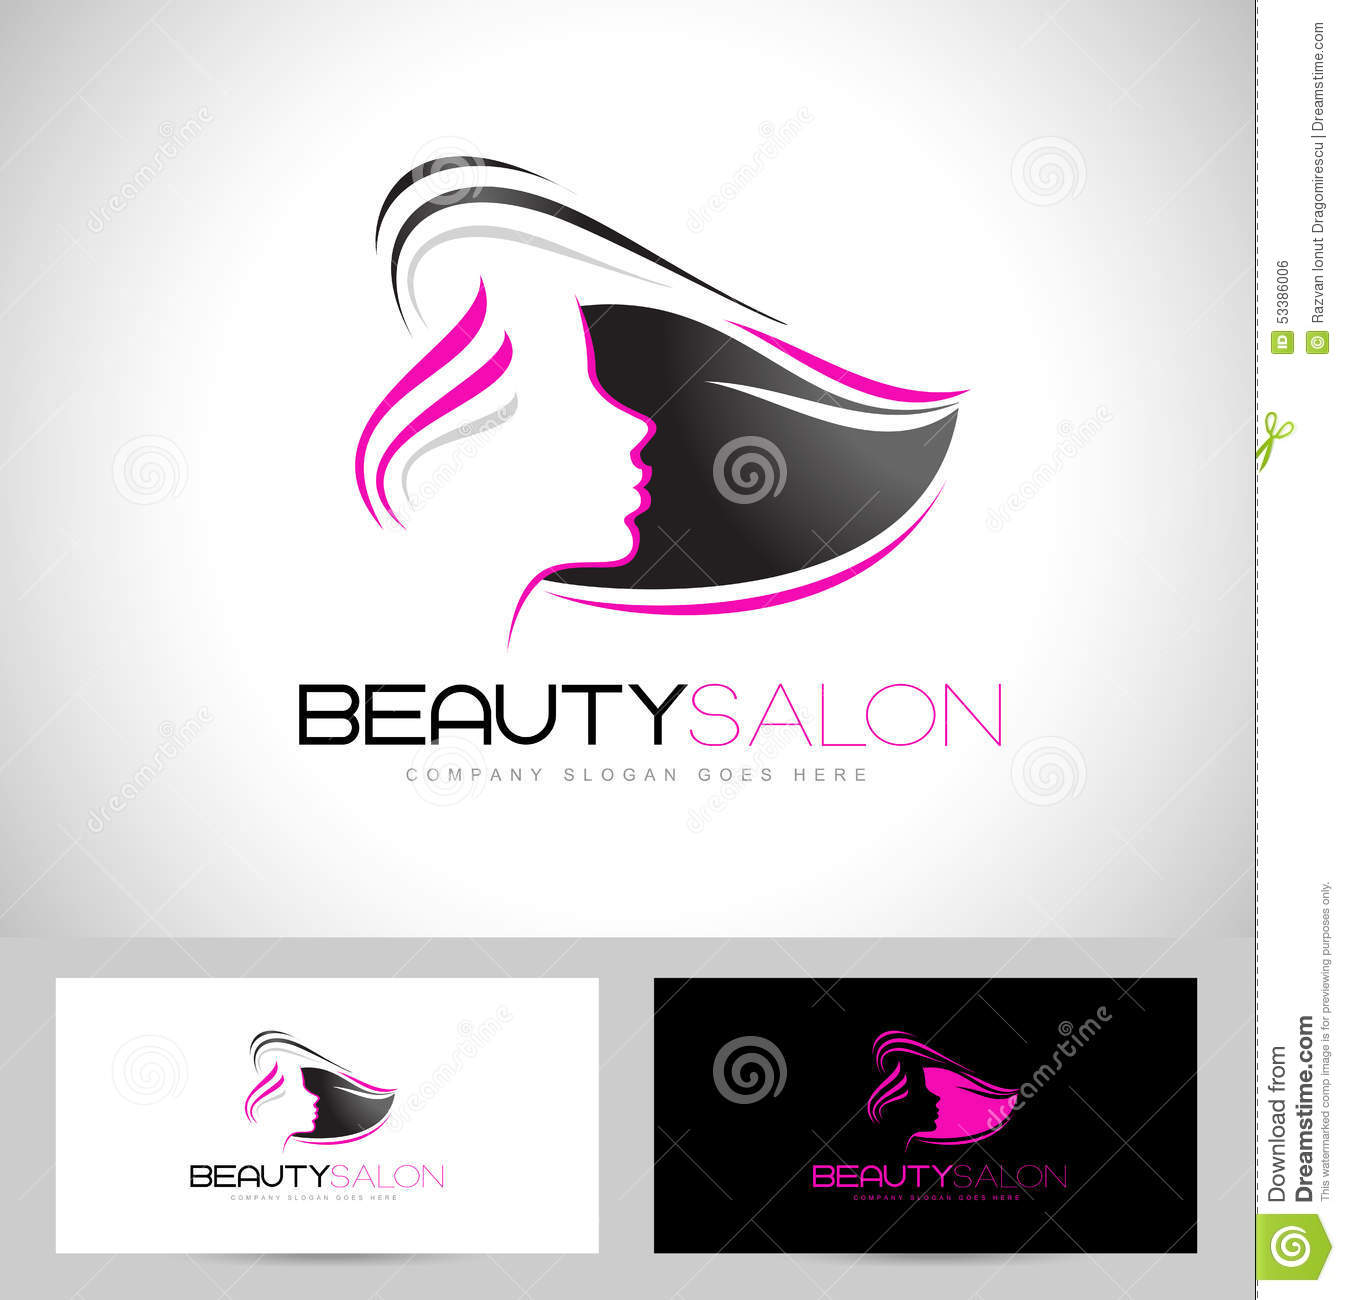 Logo Salon De Coiffure Logo De Salon De Coiffure Illustration De Vecteur Illustration Du